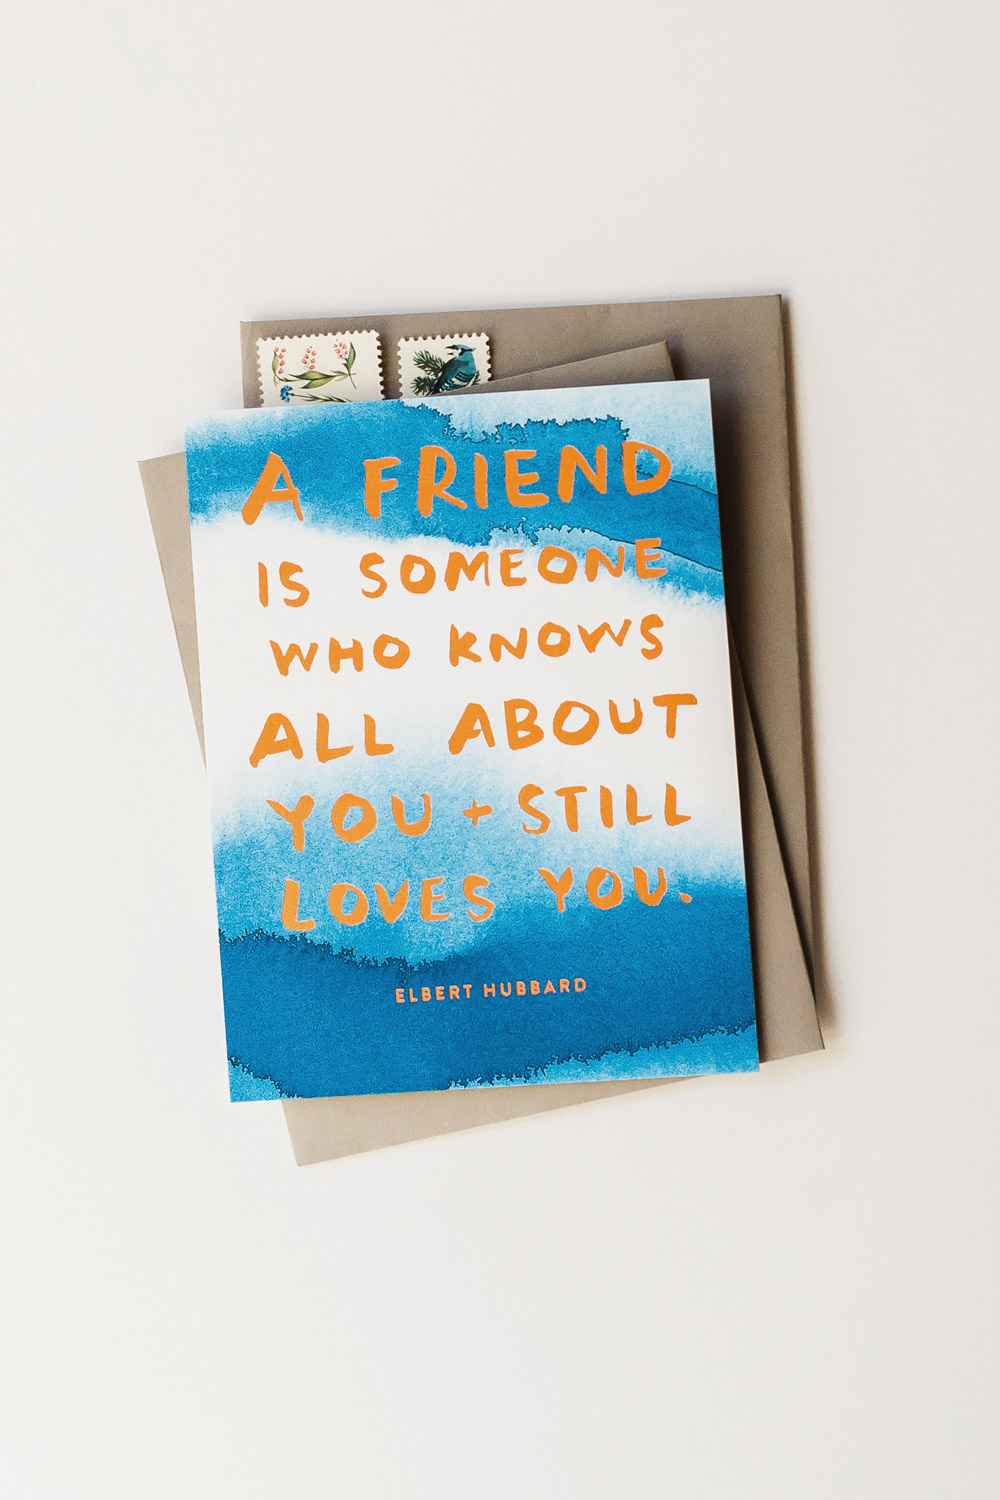 fc119-a-friend-is-someone-who-knows-all-about-you-stamps.jpg